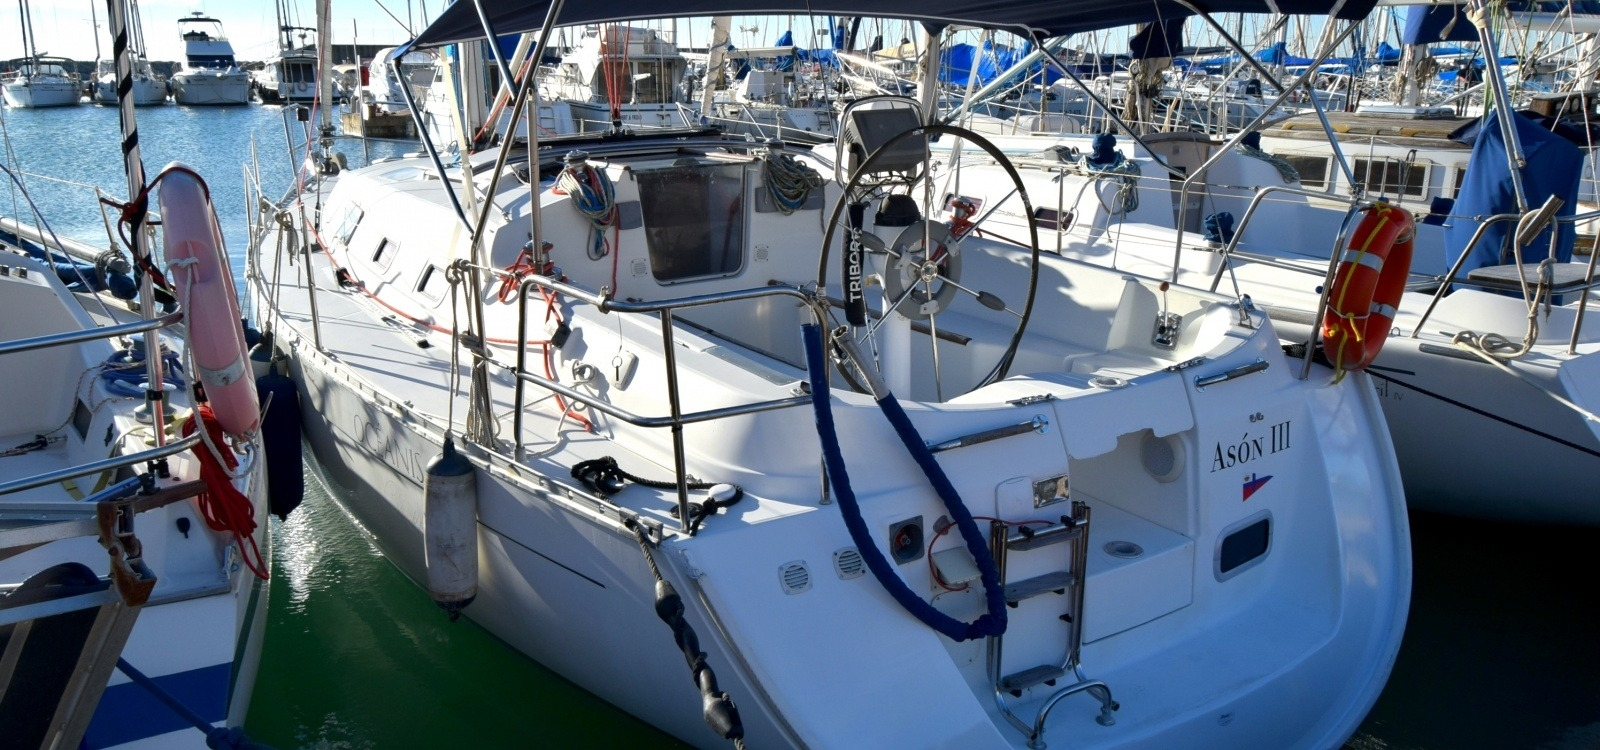 Ibiza and Formentera with the Oceanis sailboat